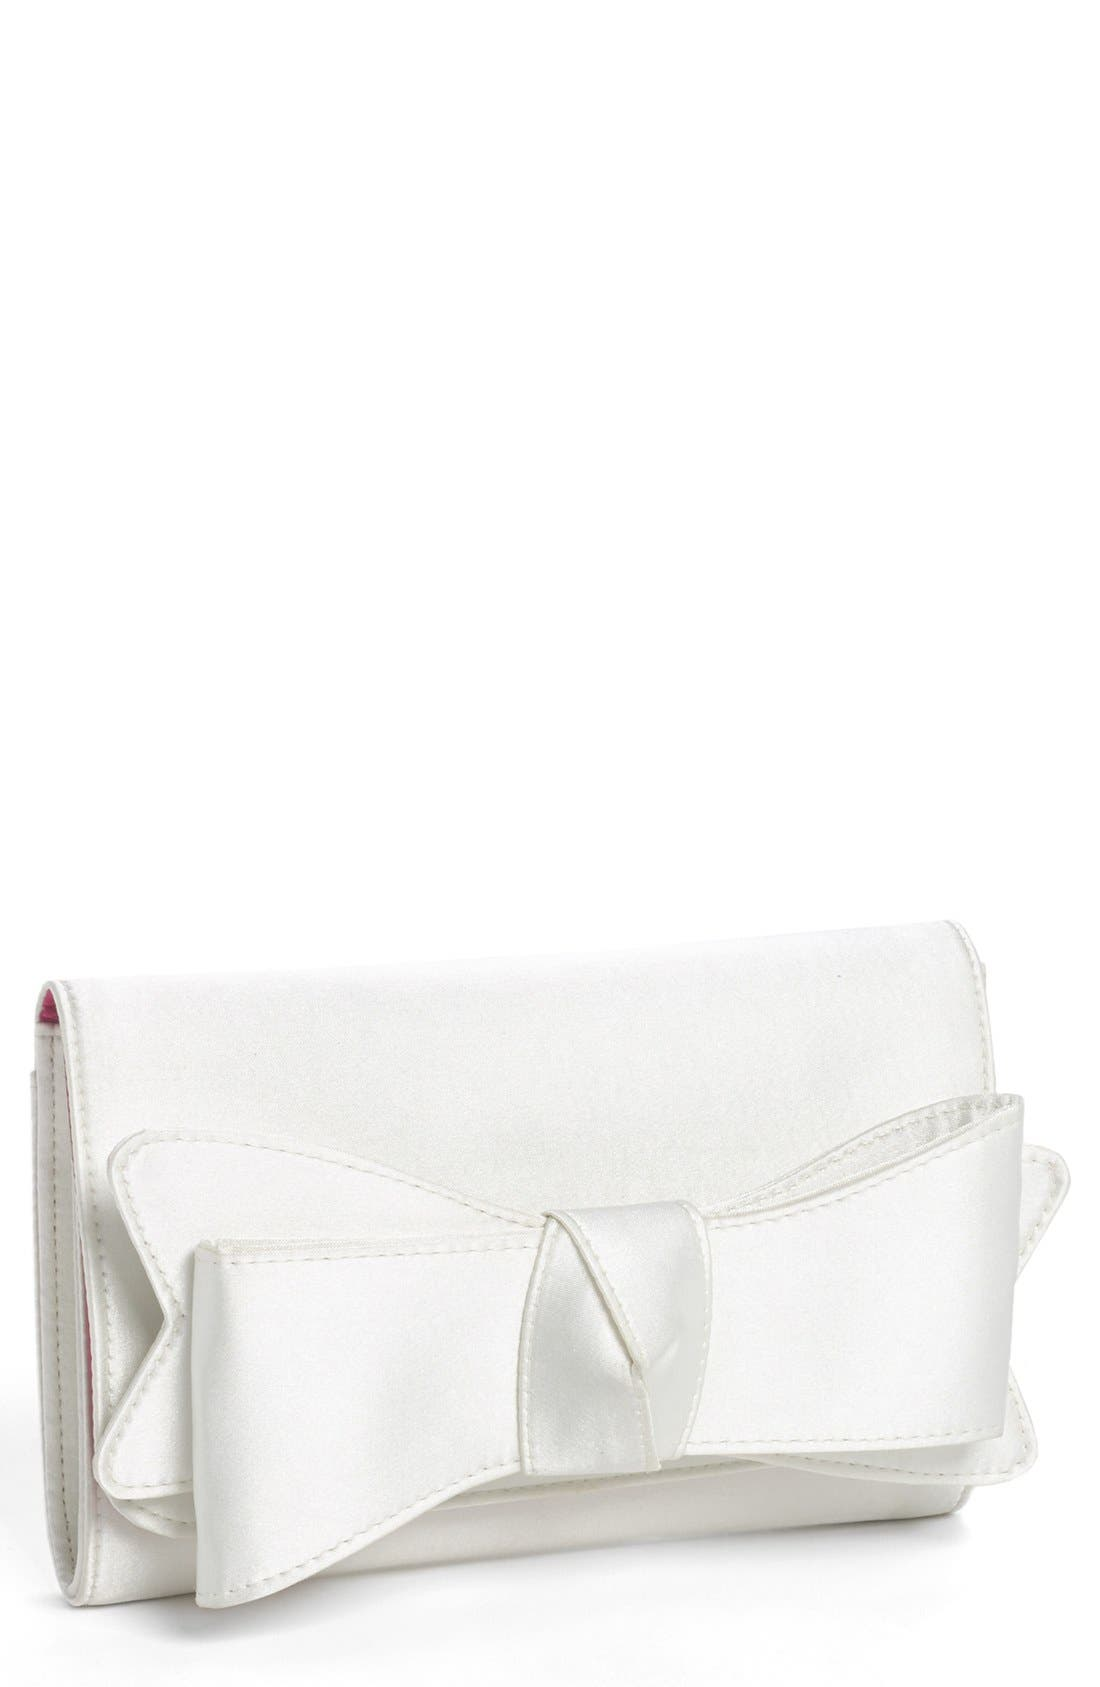 Main Image - Nina Bow Clutch